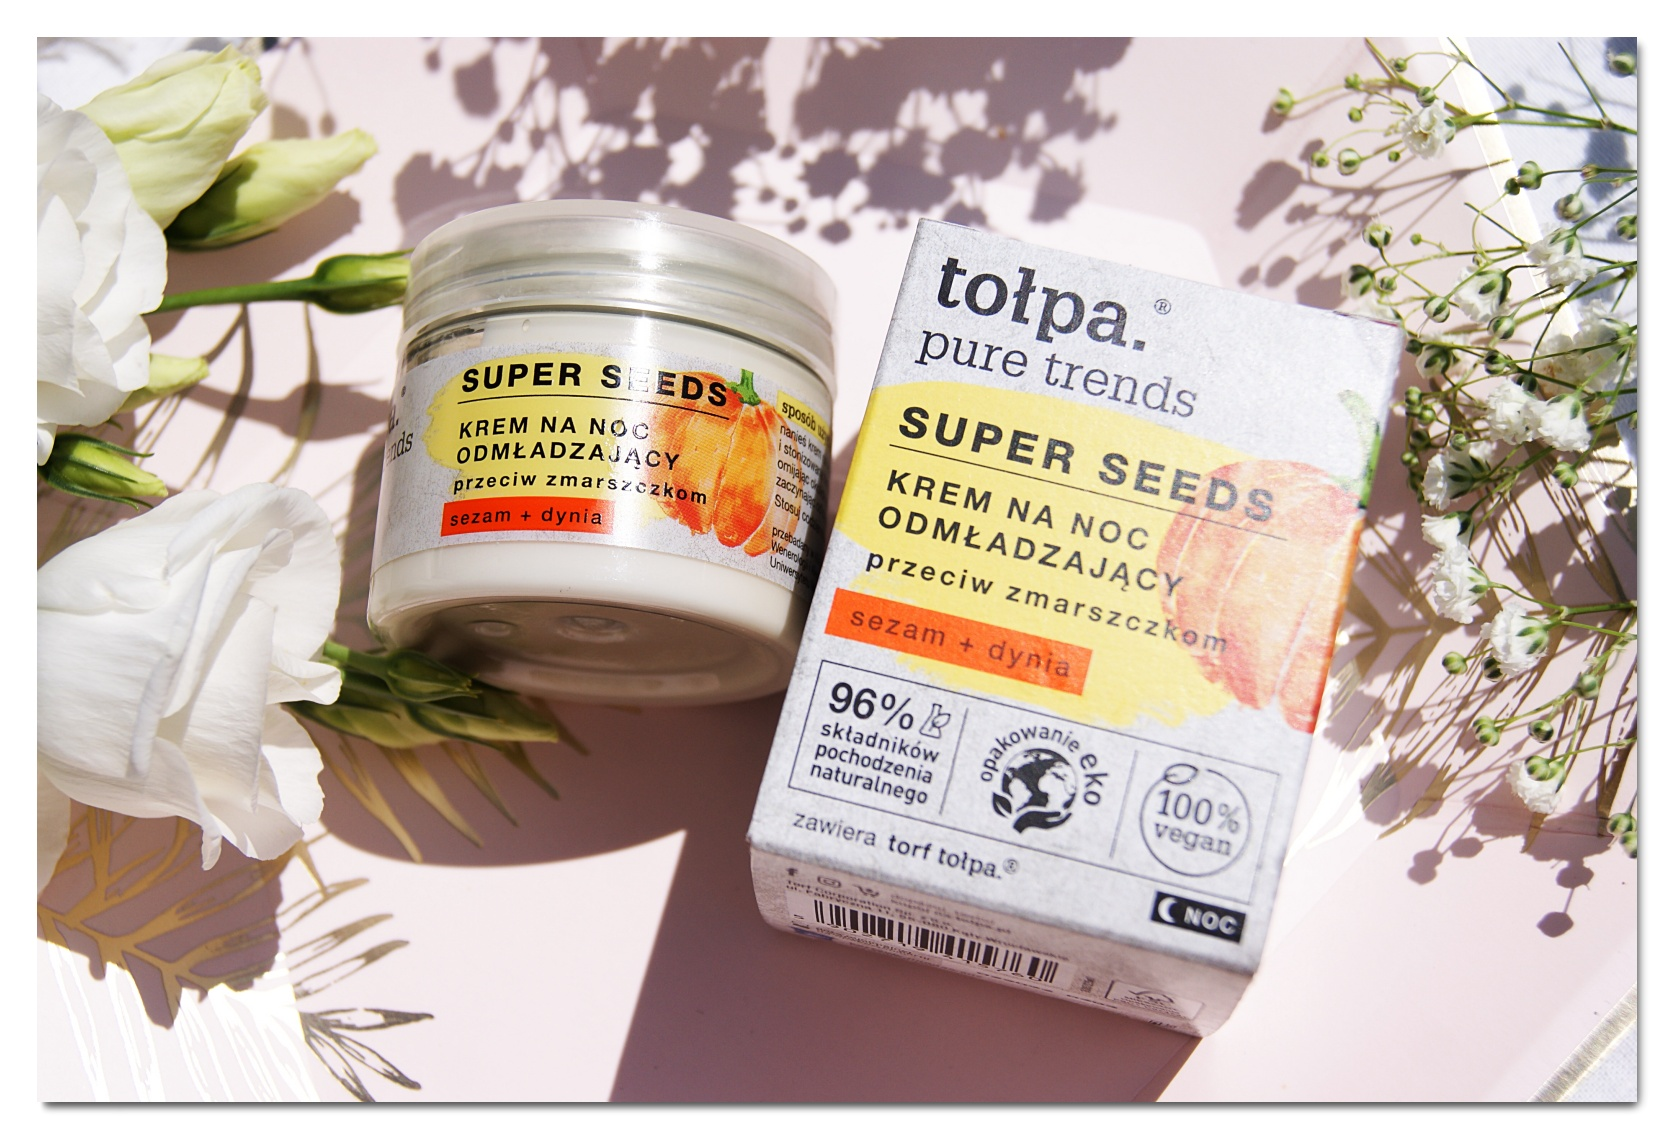 Tolpa_pure_trends_super_seeds